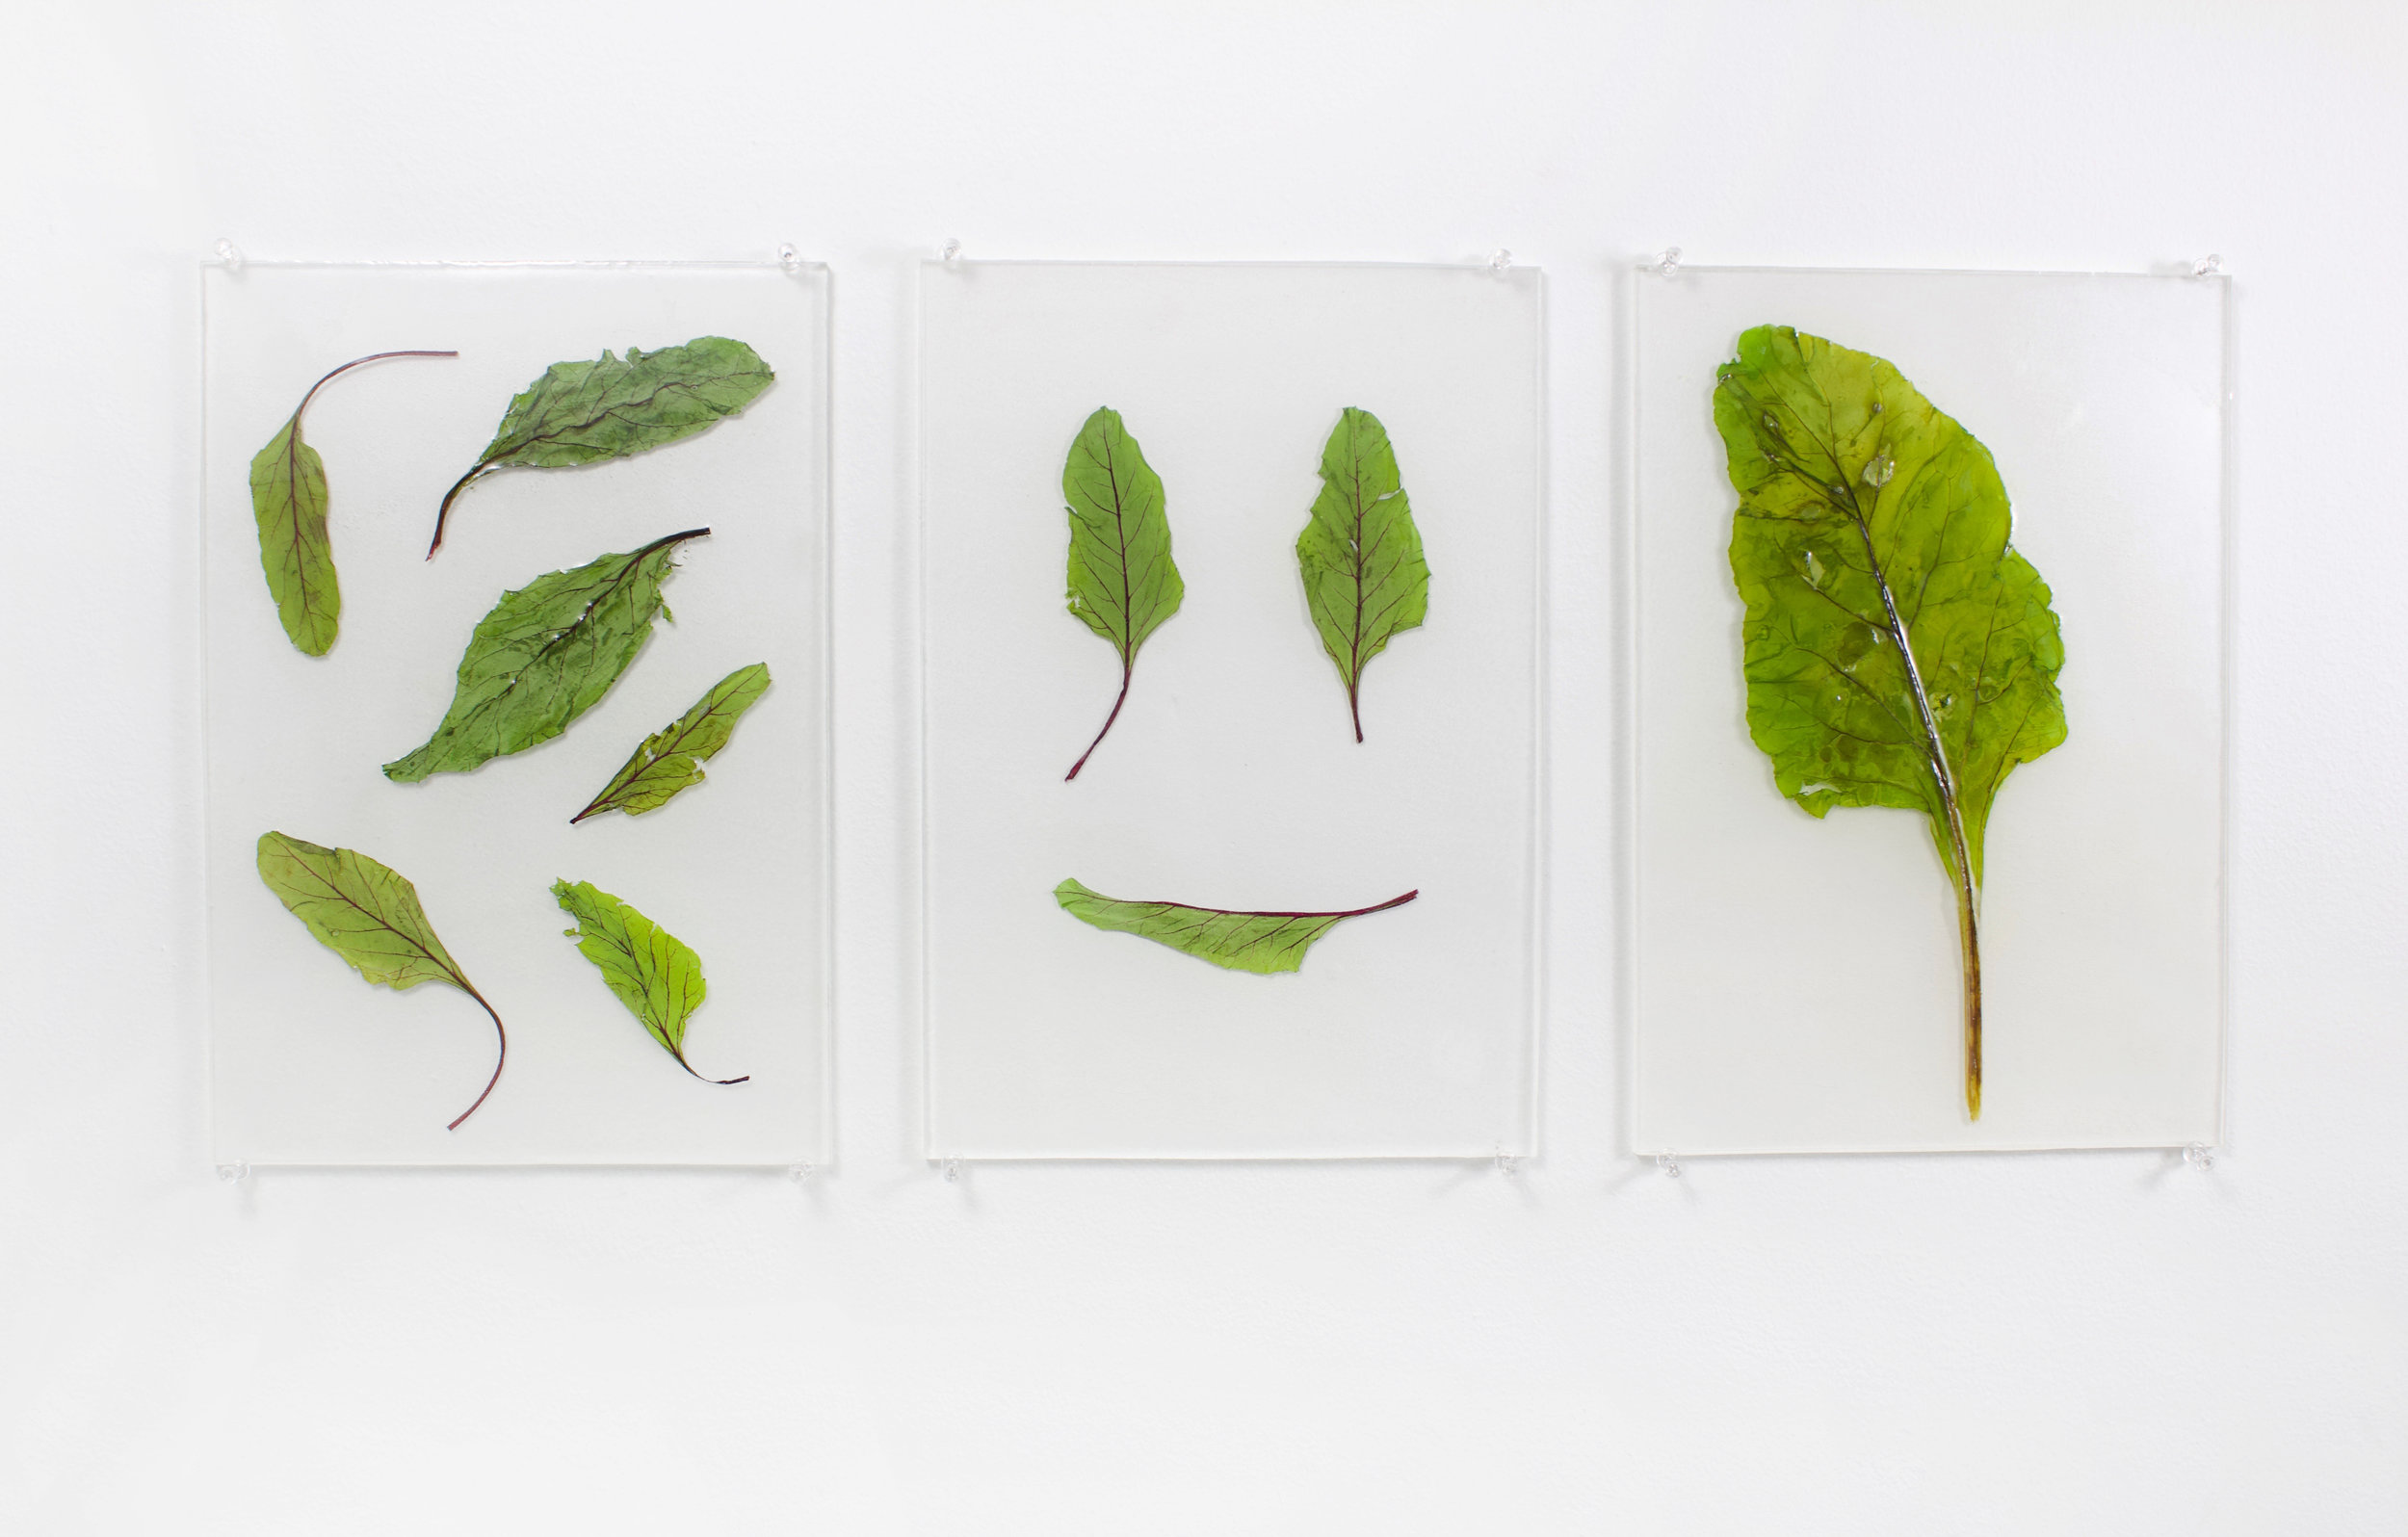 Beet Leafs Encased in Resin For the collaboration with Likewise Magazine Issue Two